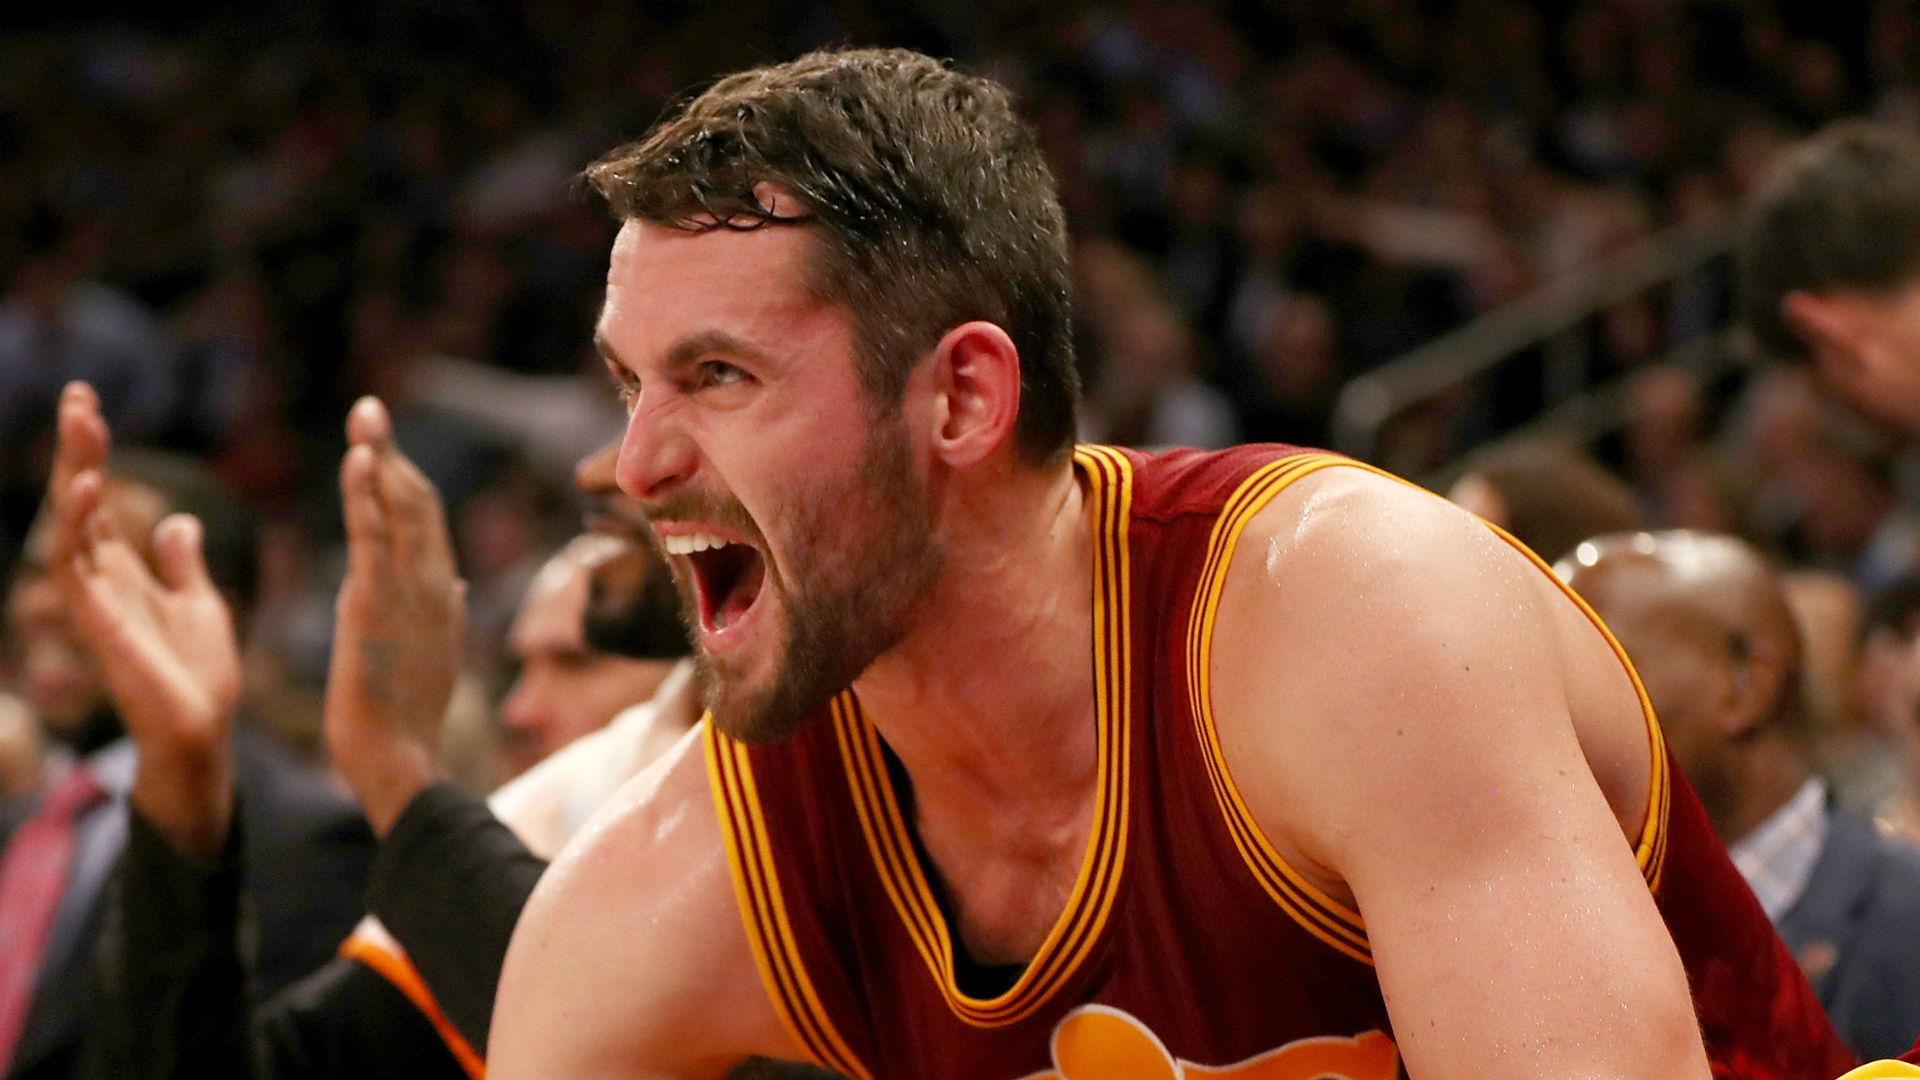 Kevin Love clears concussion protocol, available for Game 1 of NBA Finals